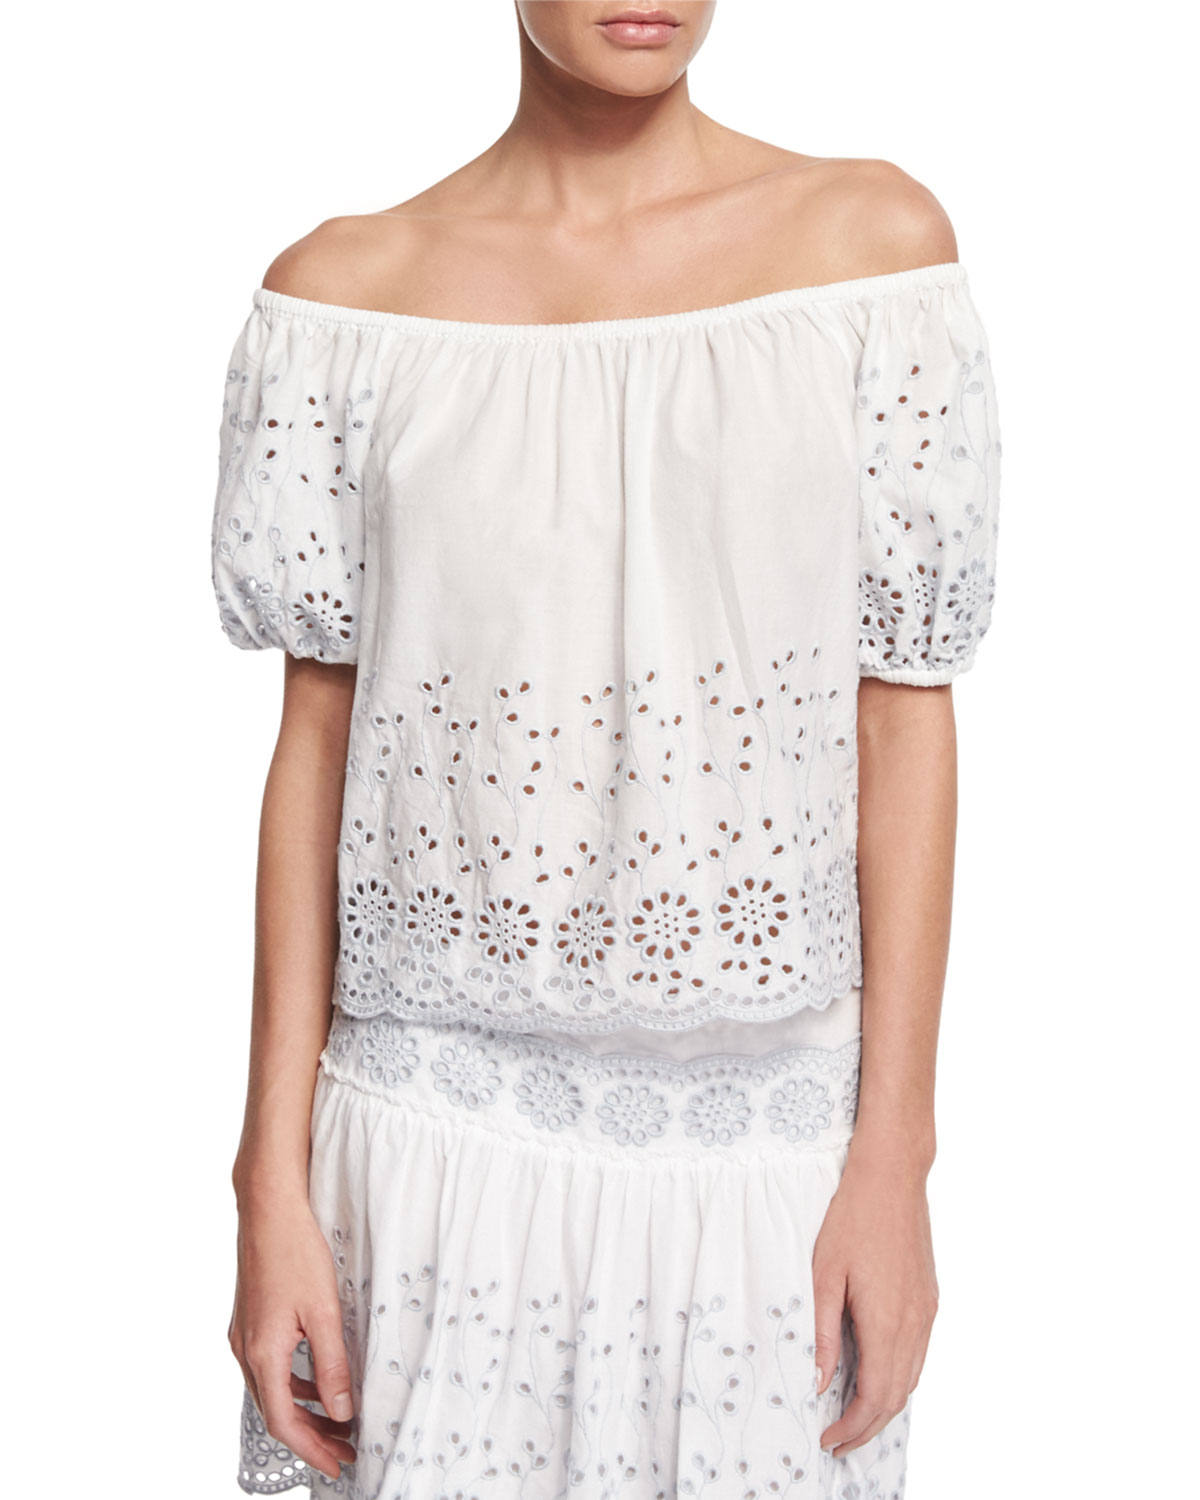 See by Chloe Boxy Off-the-Shoulder Eyelet Top, White, Size: 38 (4)